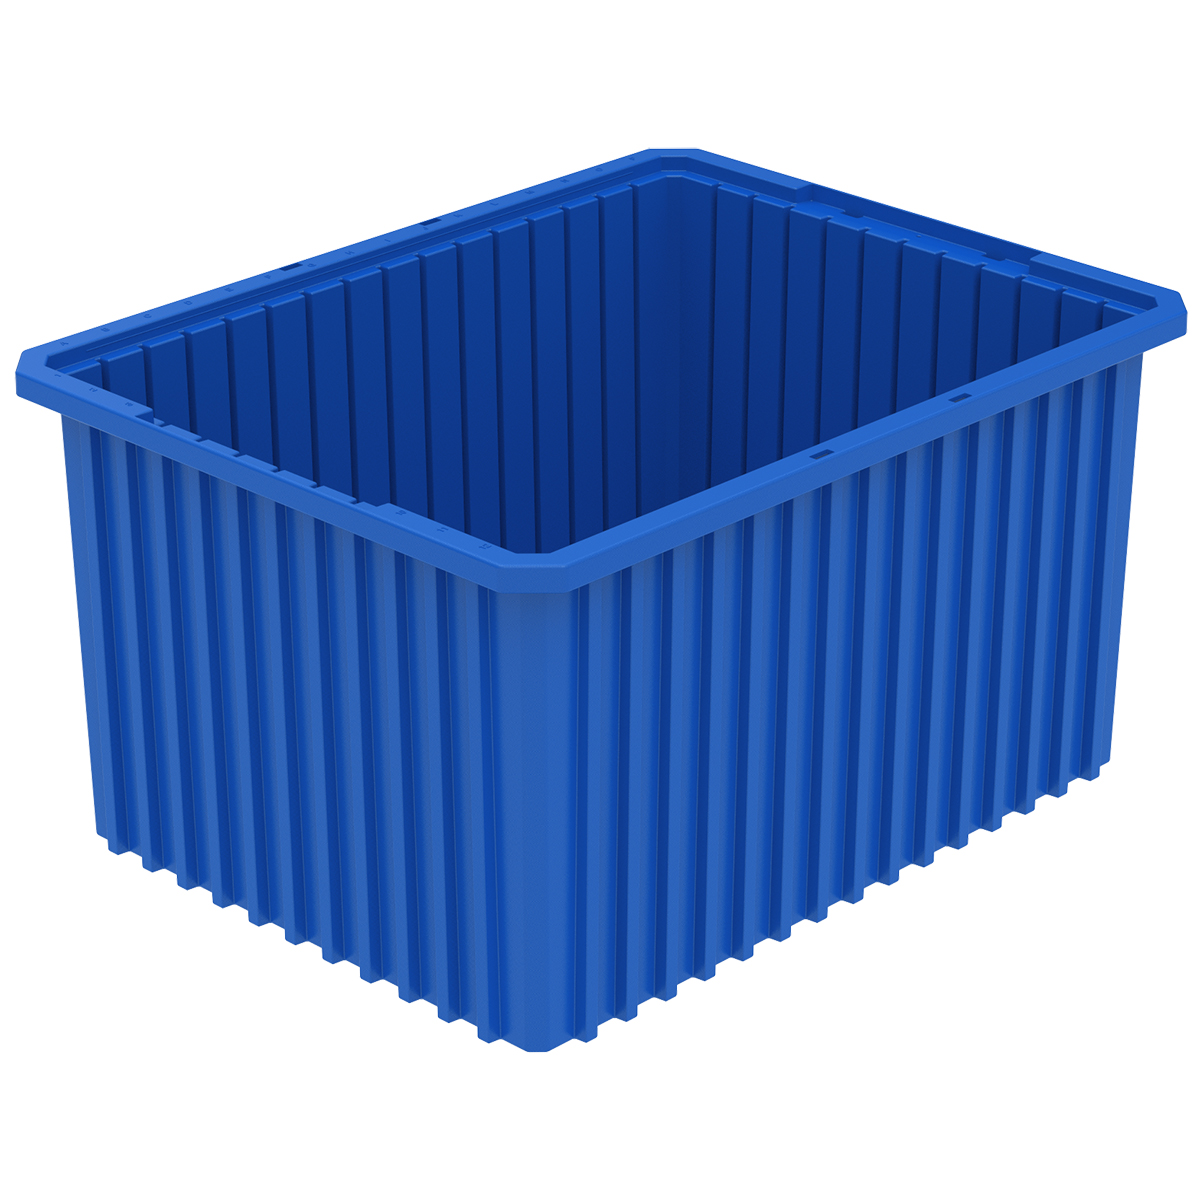 Akro-Grid Dividable Box 22-1/2 x 17-1/2 x 12, Blue .  This item sold in carton quantities of 3.